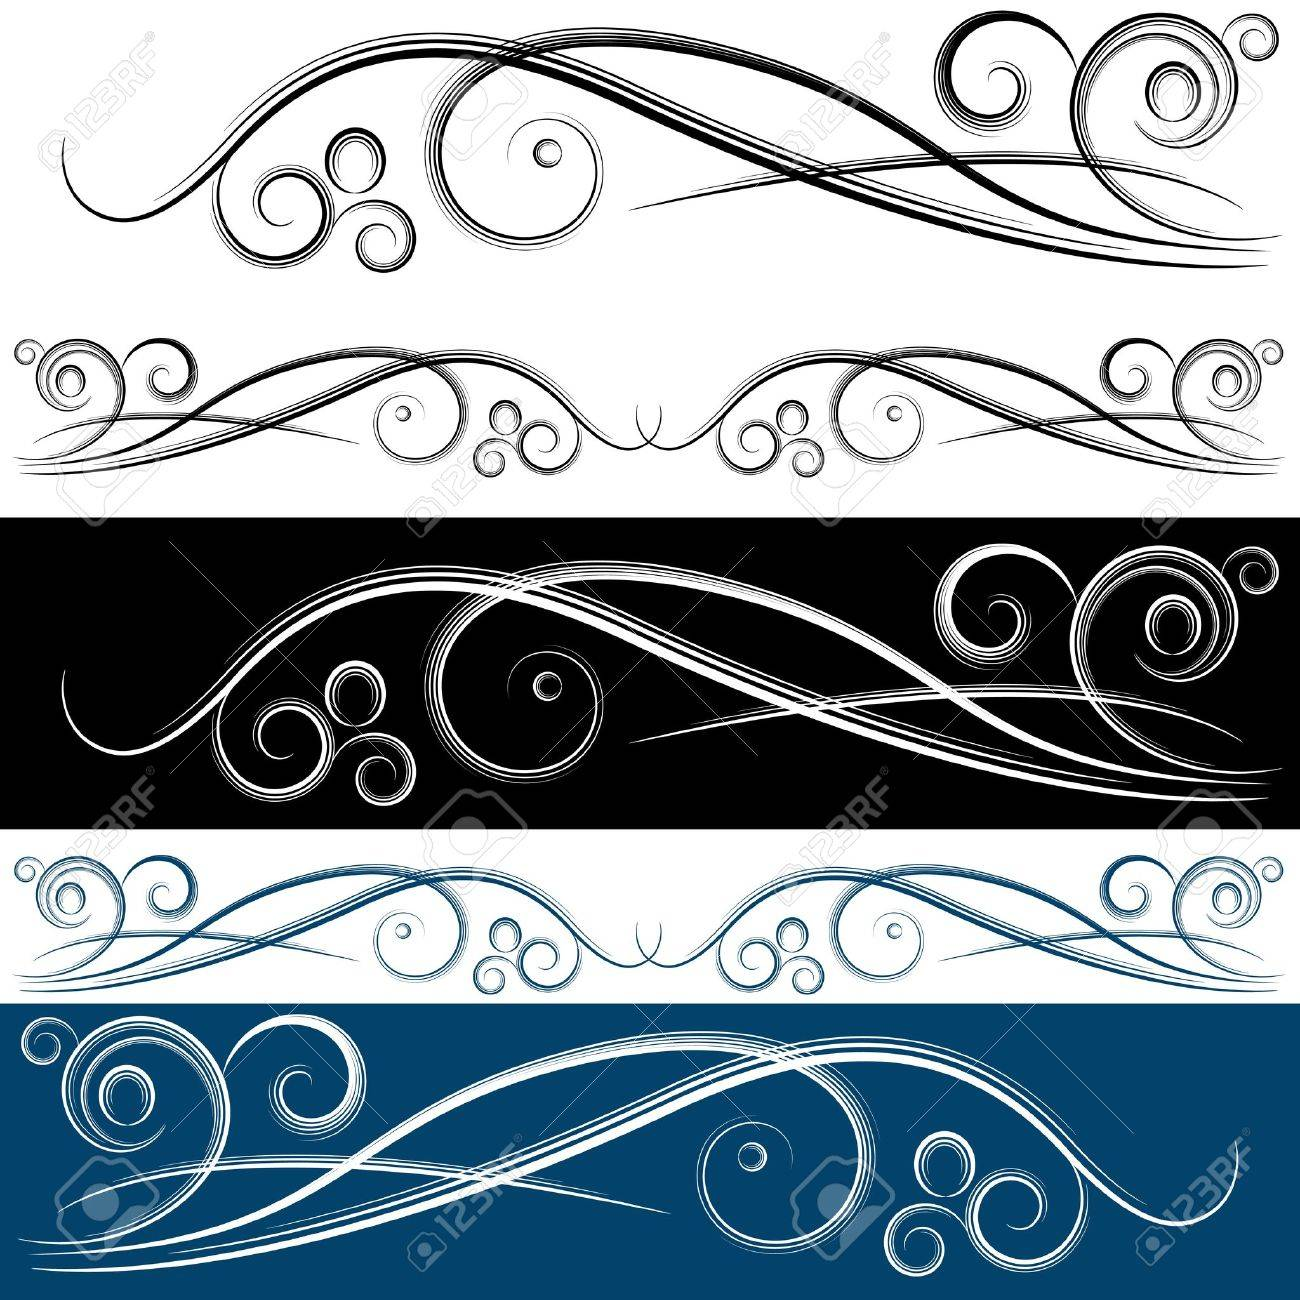 An image of a swirl banner set